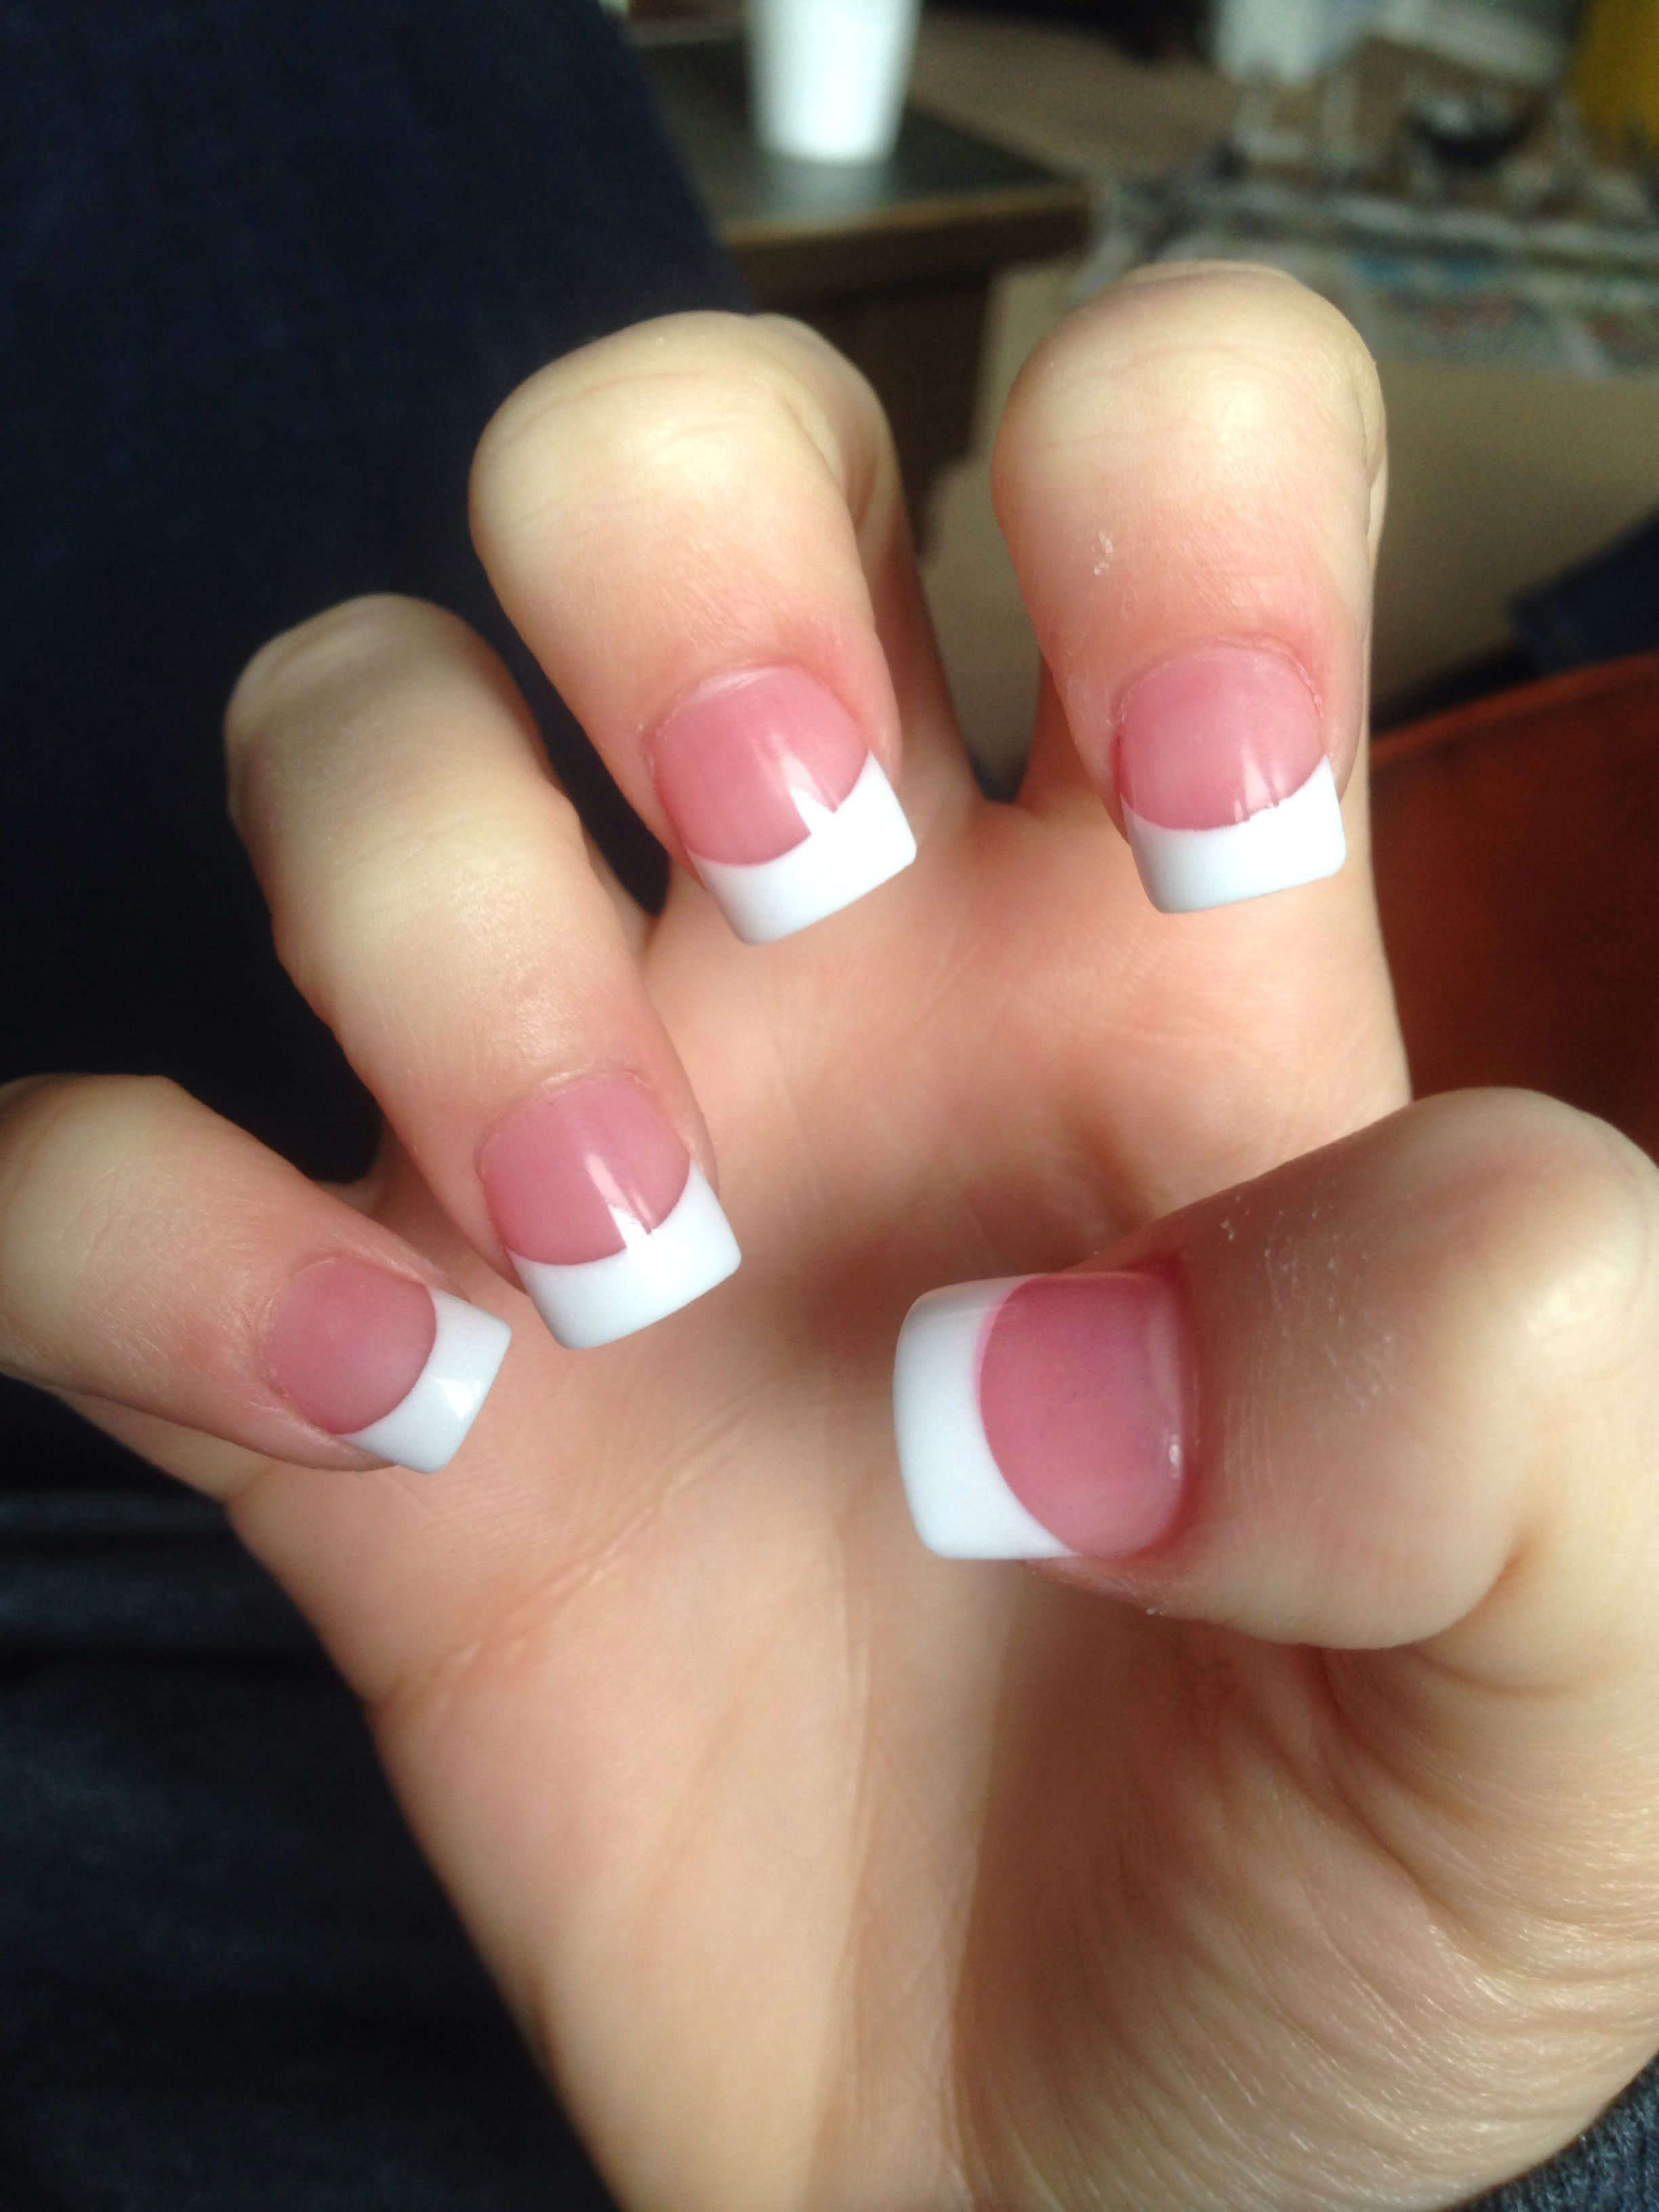 Pin By Shelbi White On Nails Short Acrylic Nails Acrylic Nail Shapes Nail Shapes